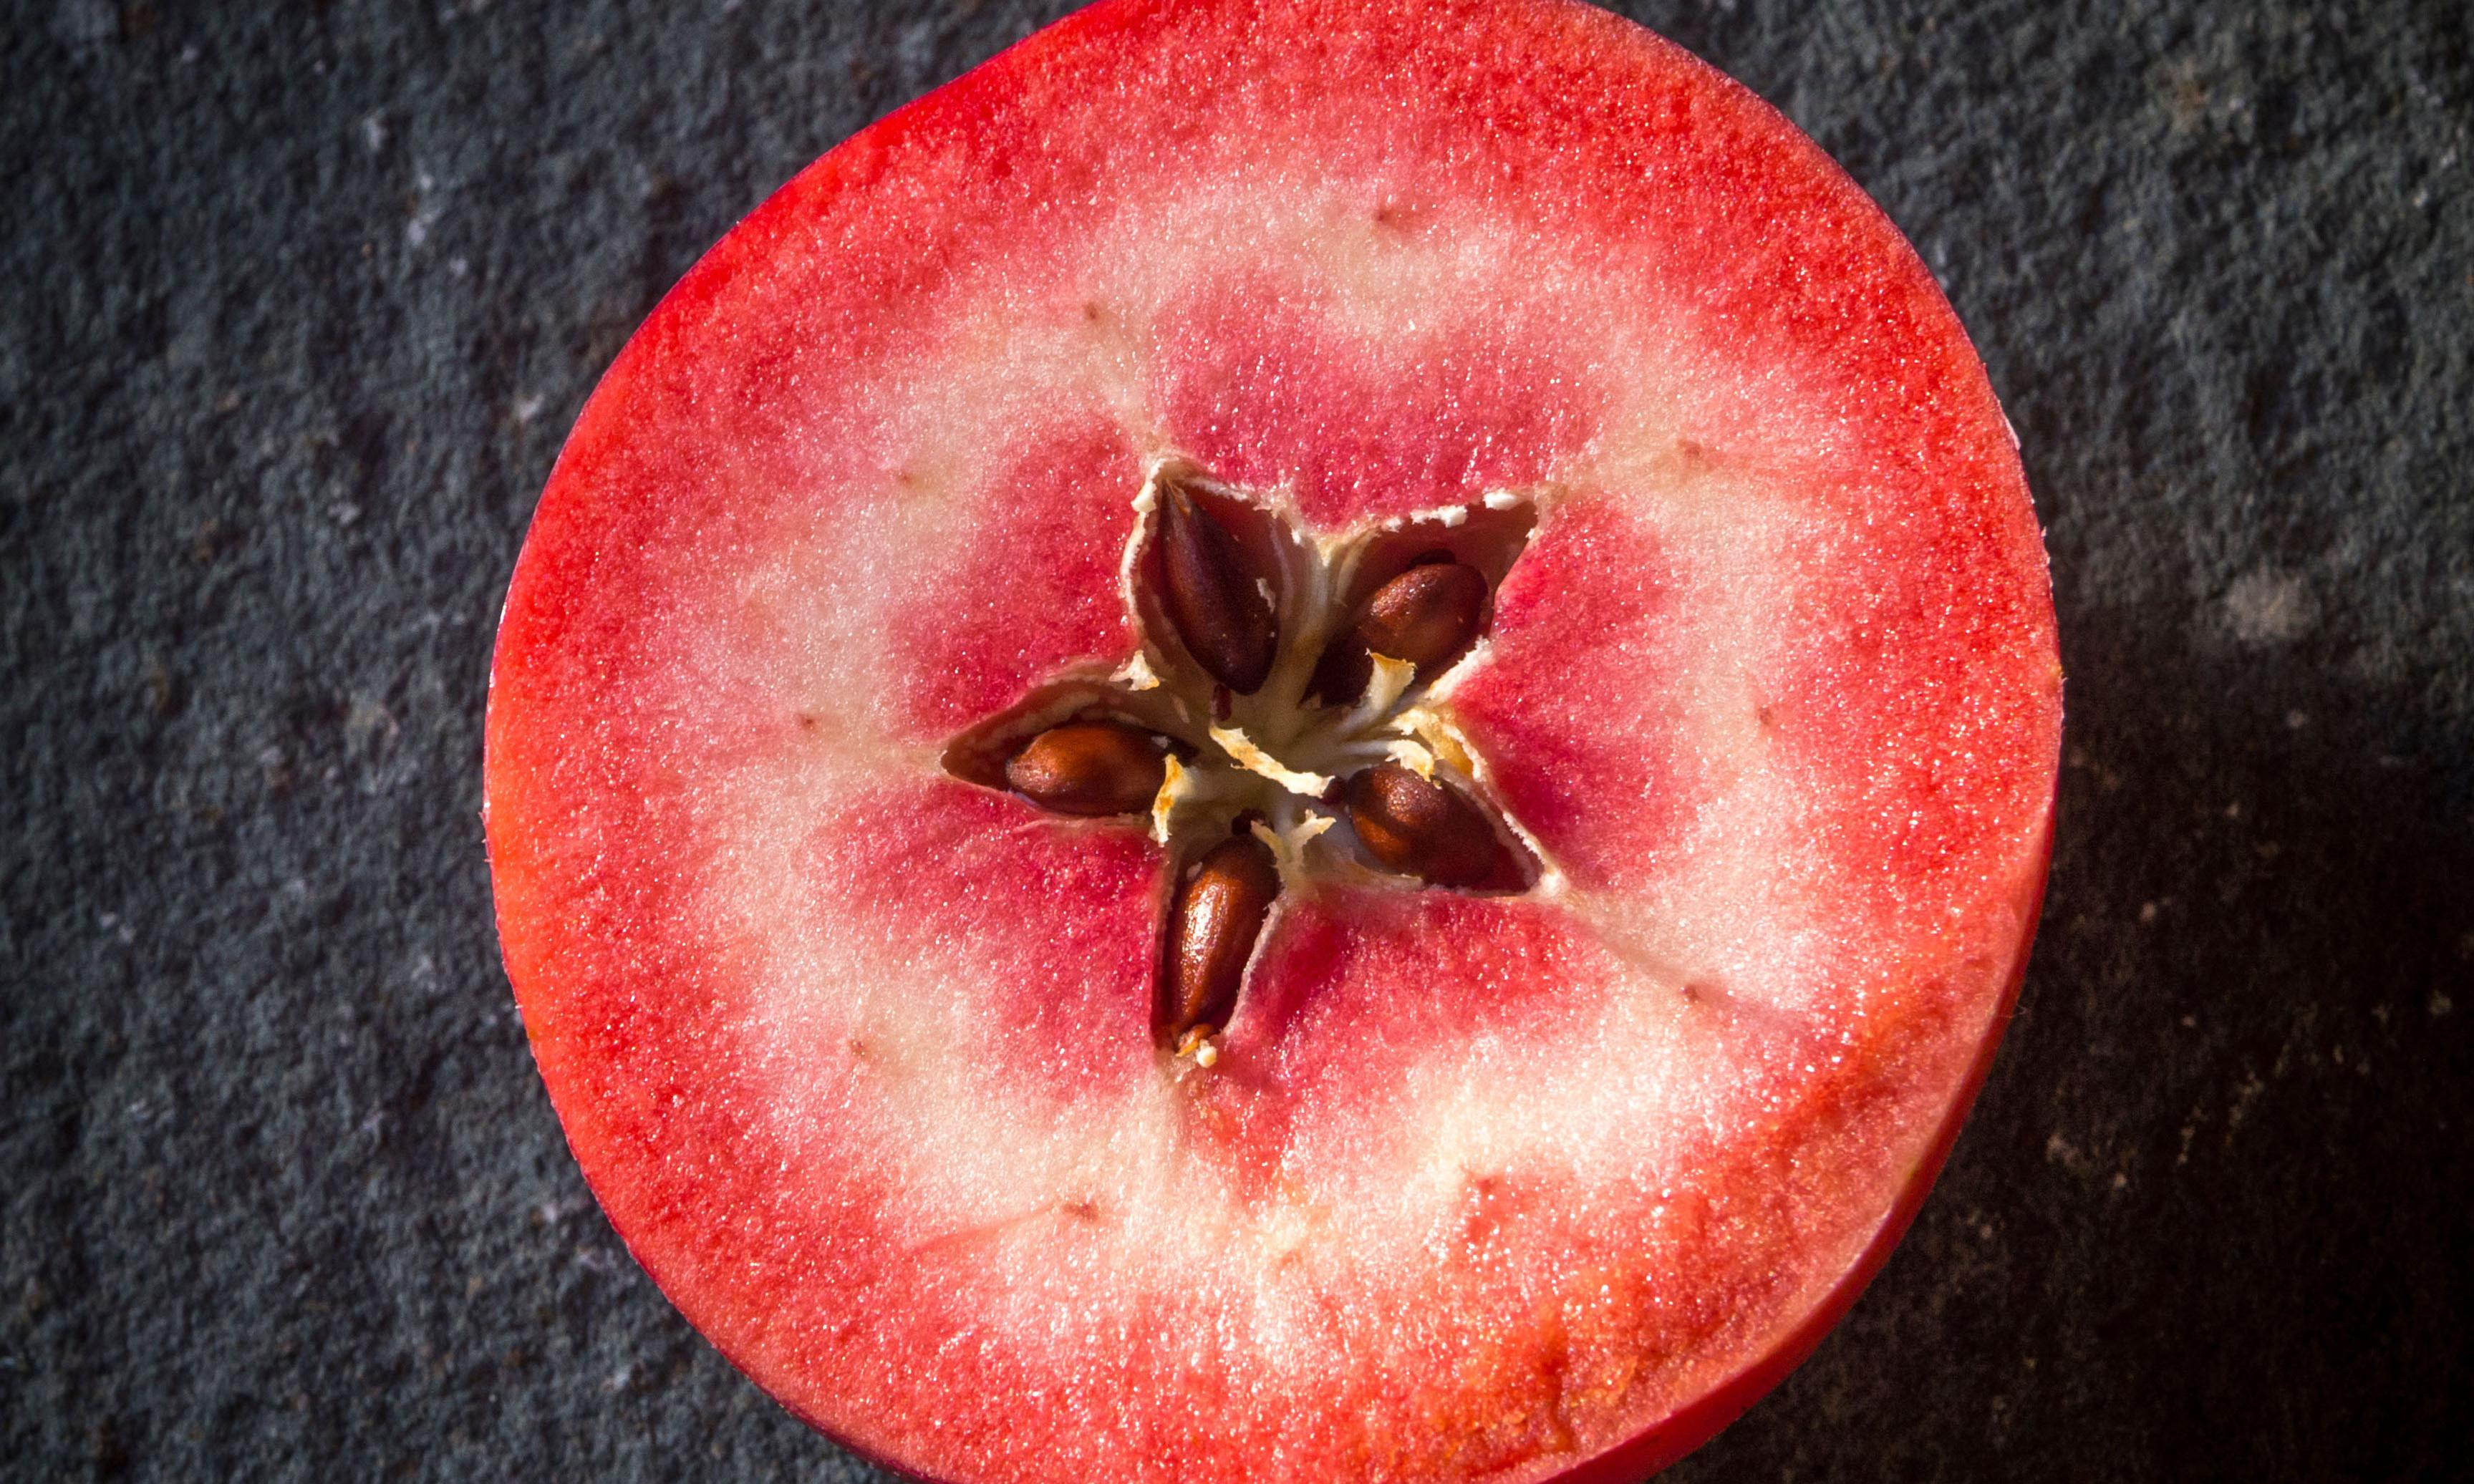 Weird new fruits could hit aisles soon thanks to gene-editing